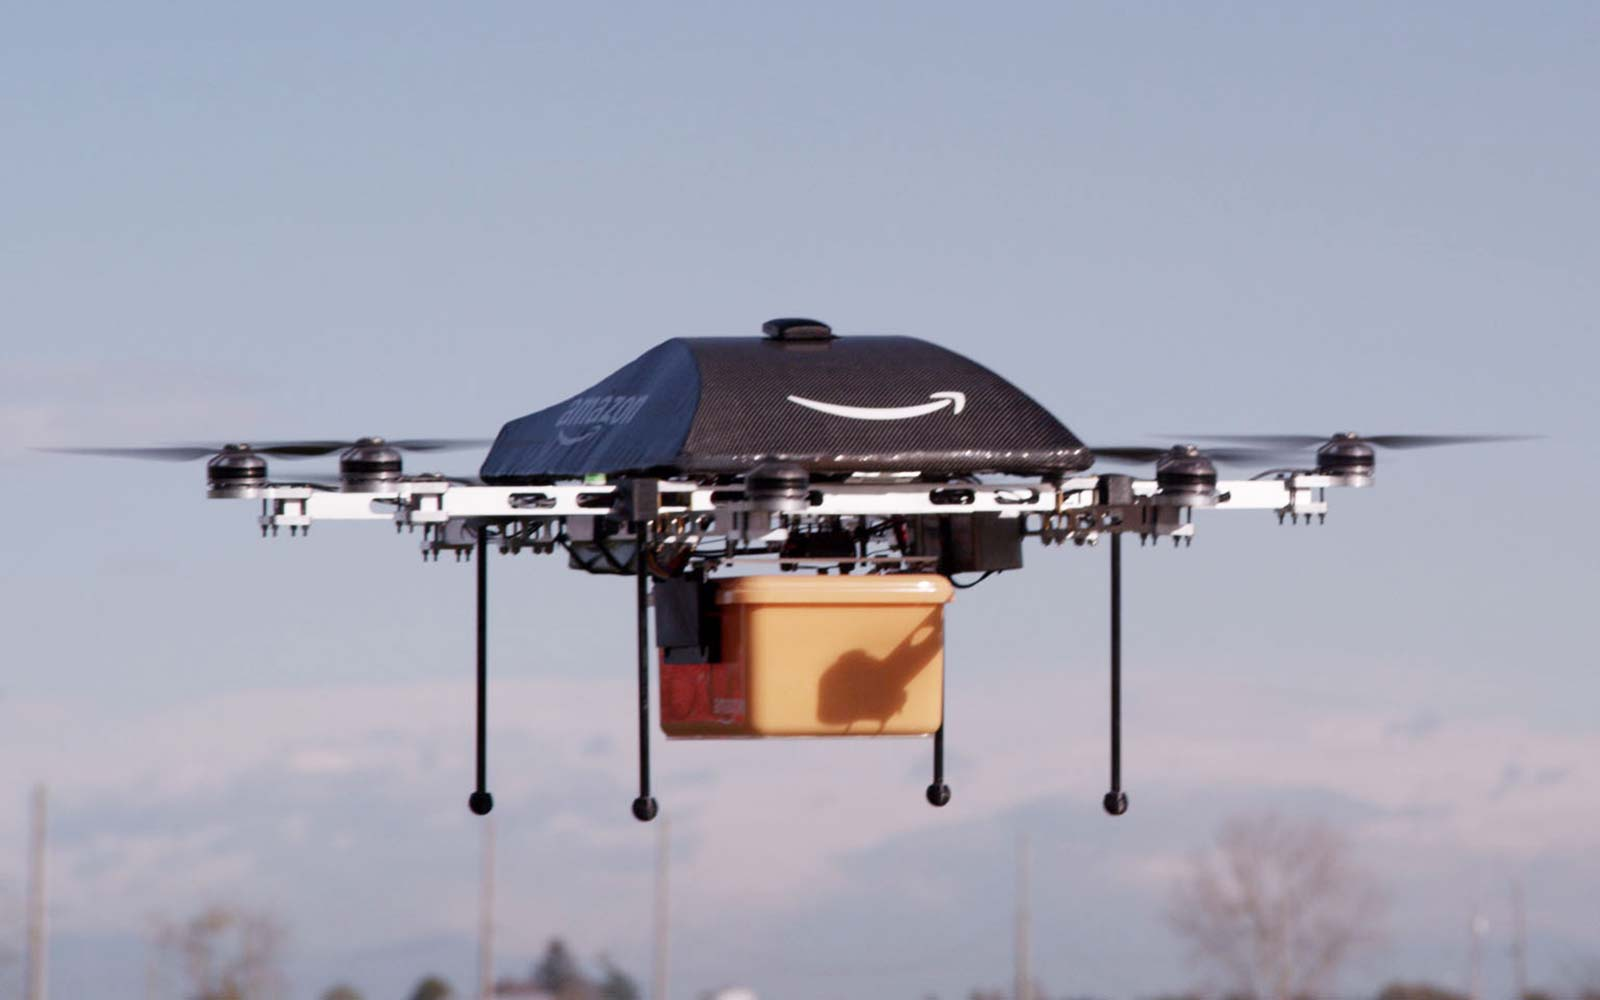 Amazon Wants to Drop Your Packages by Parachute